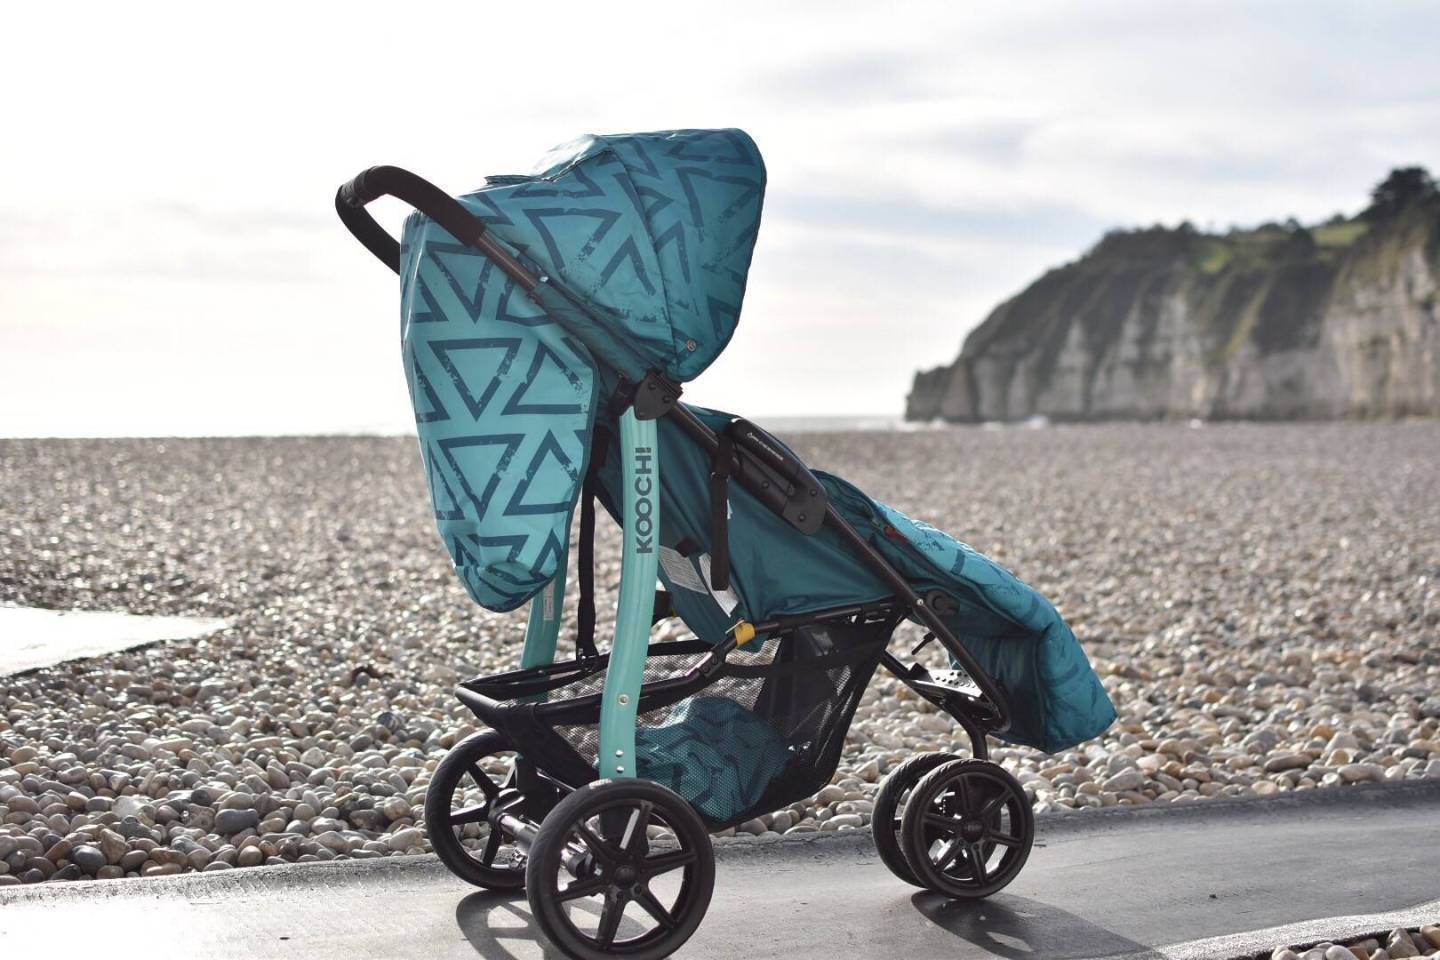 Koochi Pushmatic Pushchair Reviewed